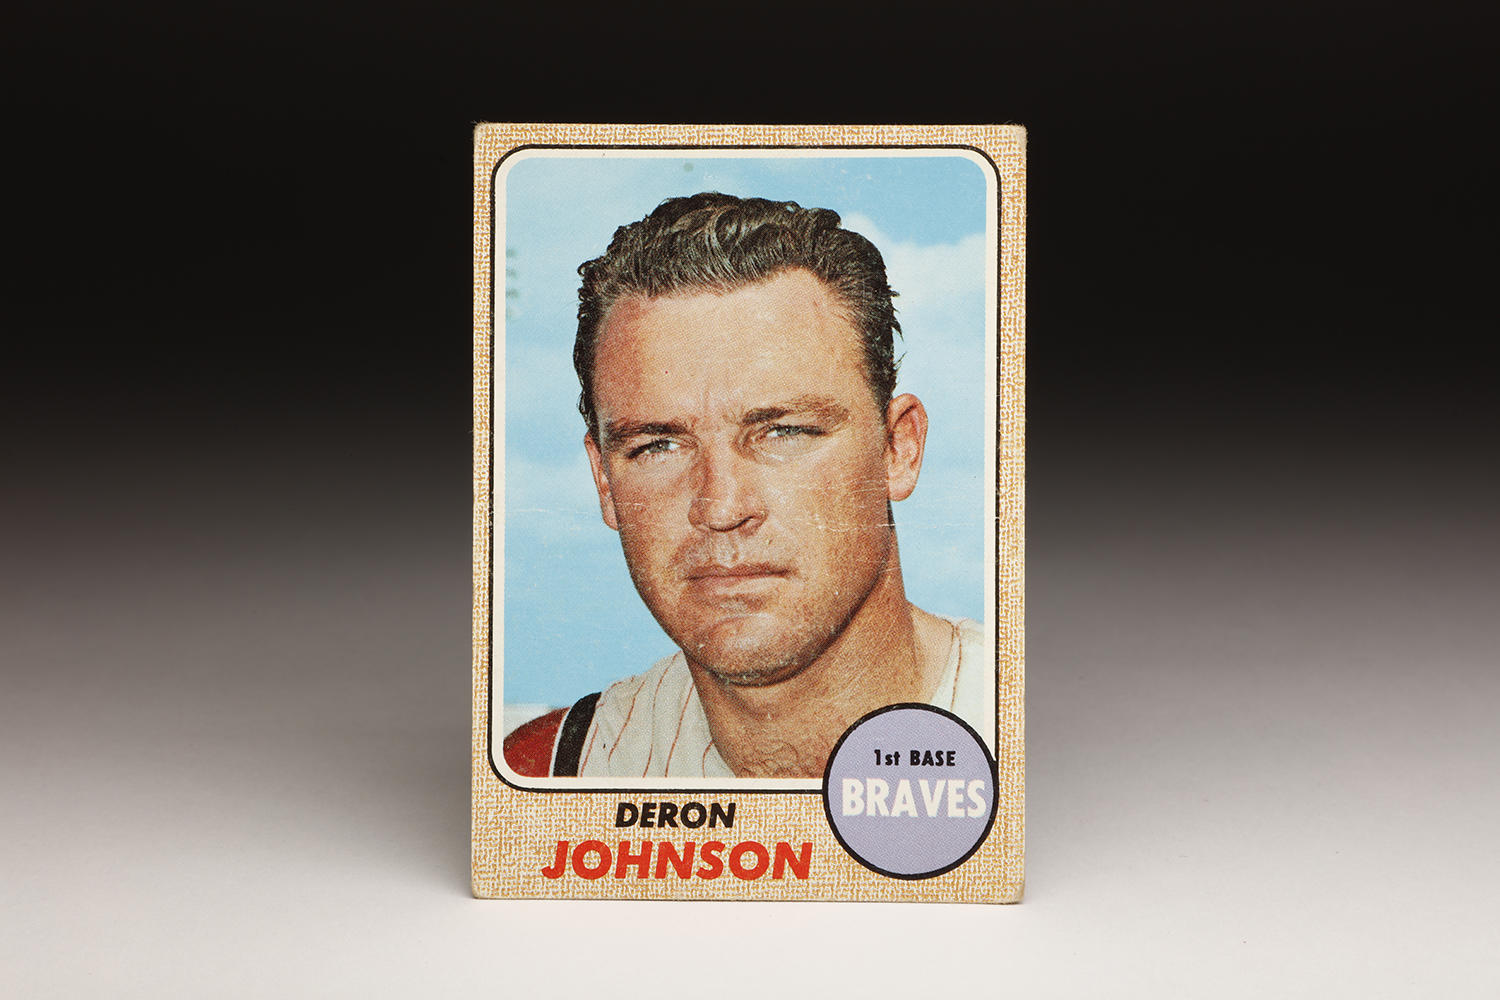 Deron Johnson's 1968 Topps card depicts his toughness, but teammates knew him as a kind and supportive man with a dogged work ethic. (Milo Stewart Jr. / National Baseball Hall of Fame)